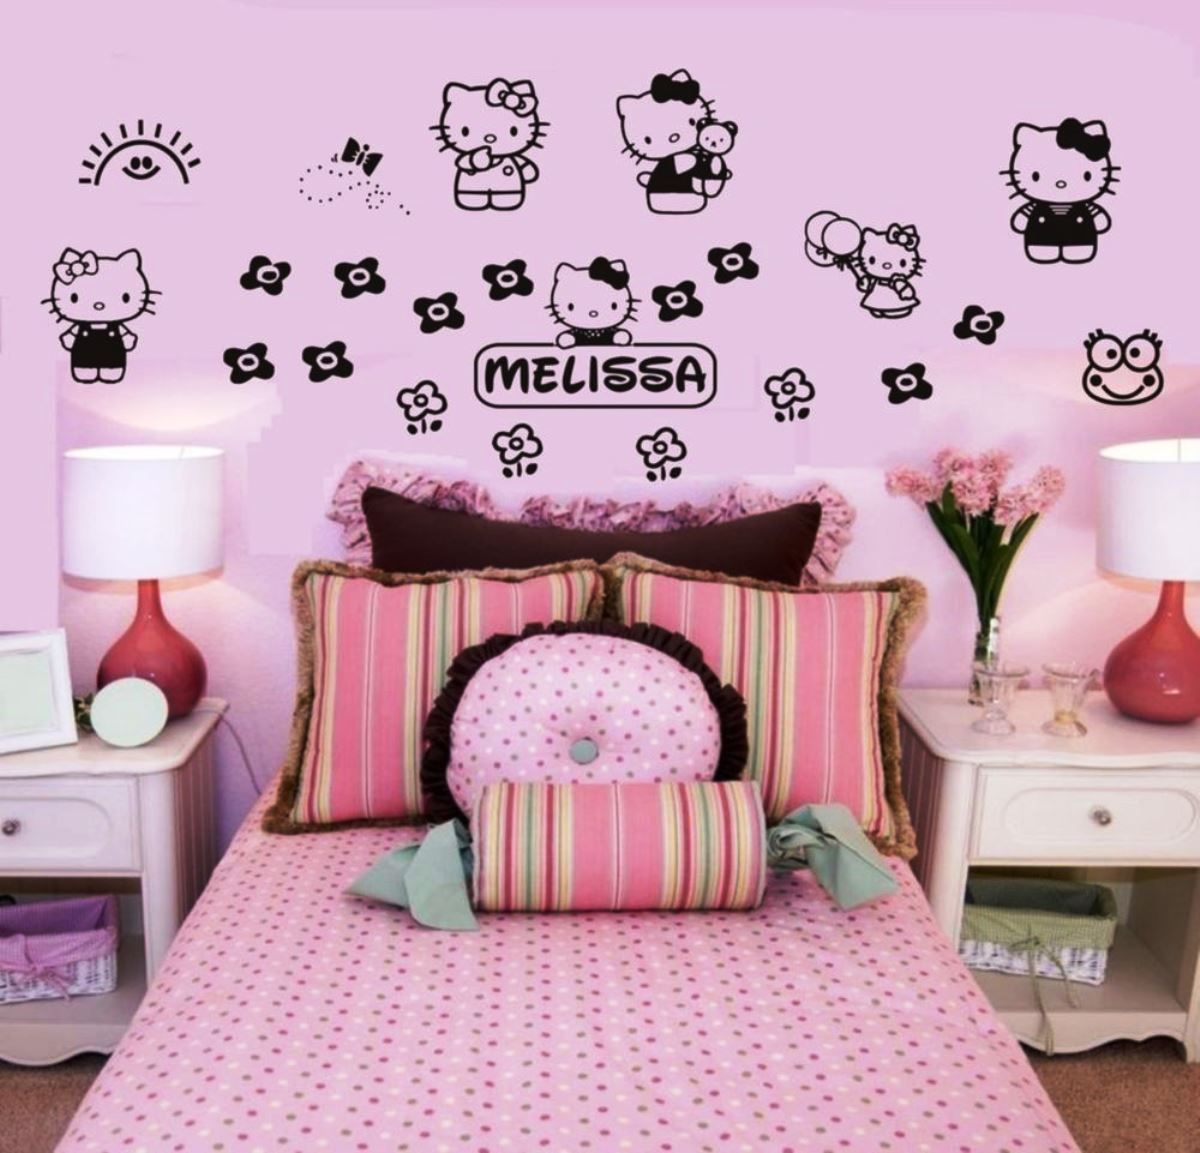 Hello kitty bedroom wall stickers - Sweet Pink White Bedroom Furniture On Laminate Floor Paired With Black Hello Kitty Wall Decal Design